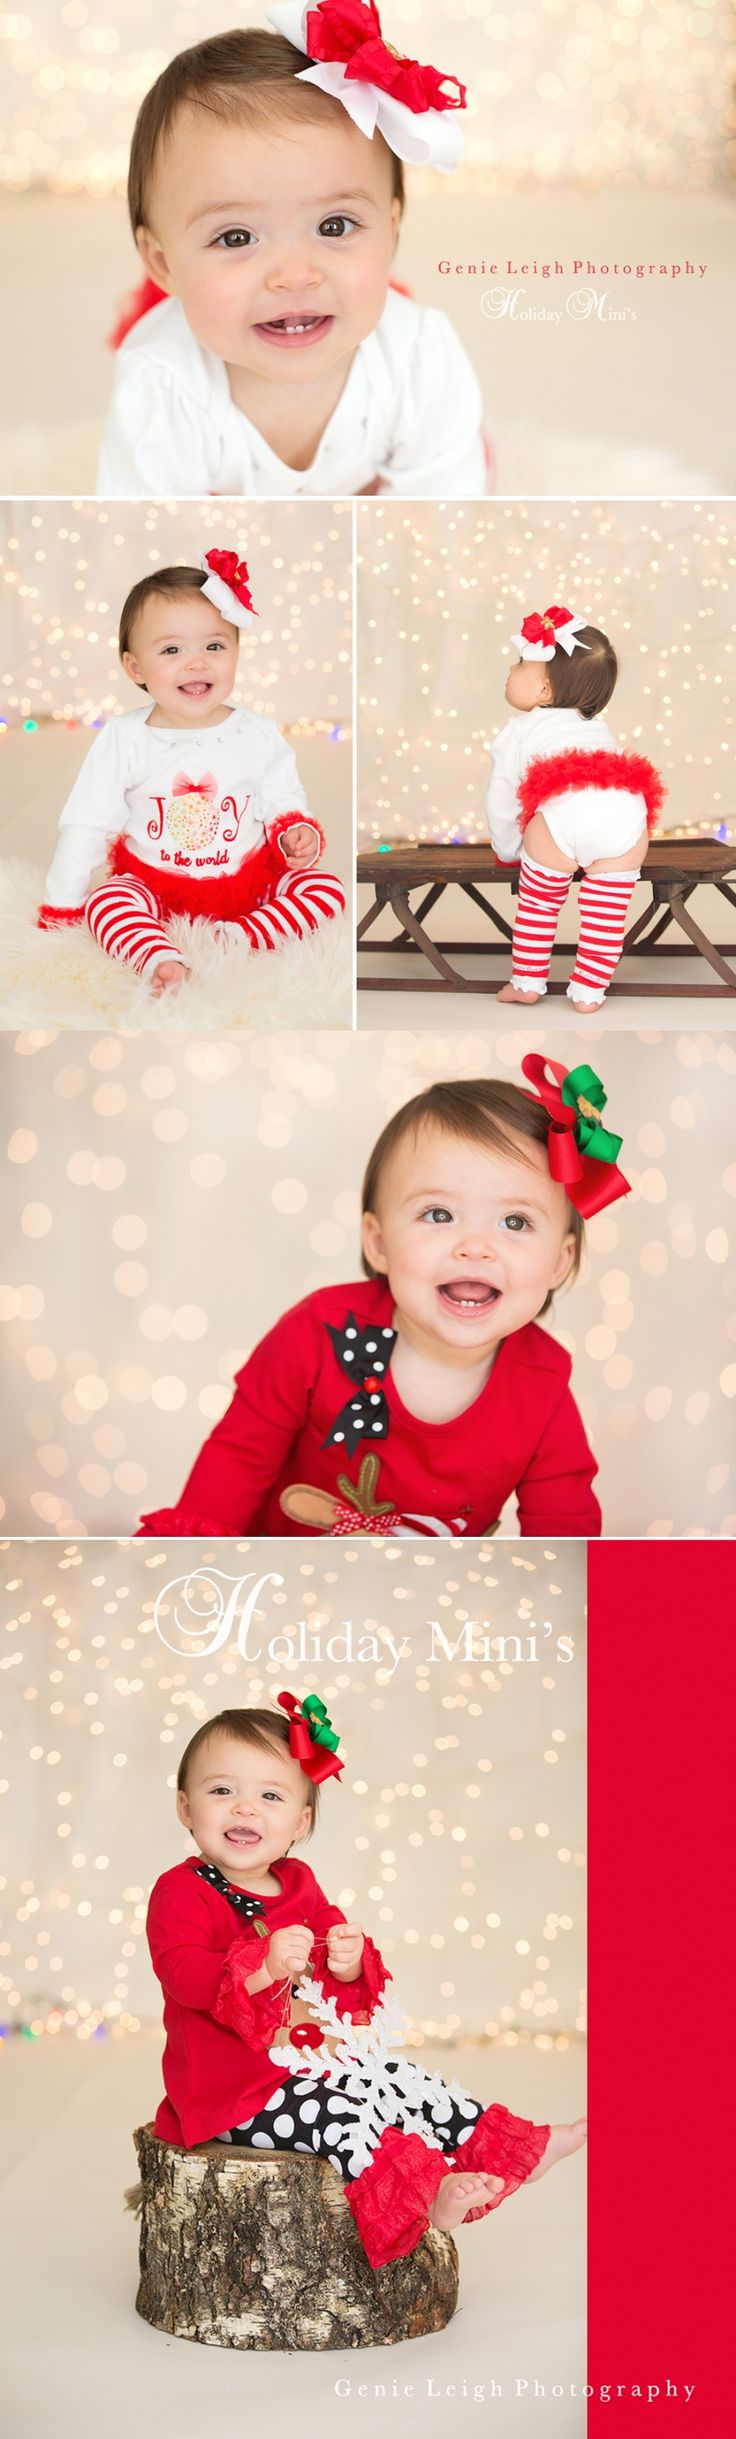 Winter Wonderland Holiday Mini's » Genie Leigh Photography